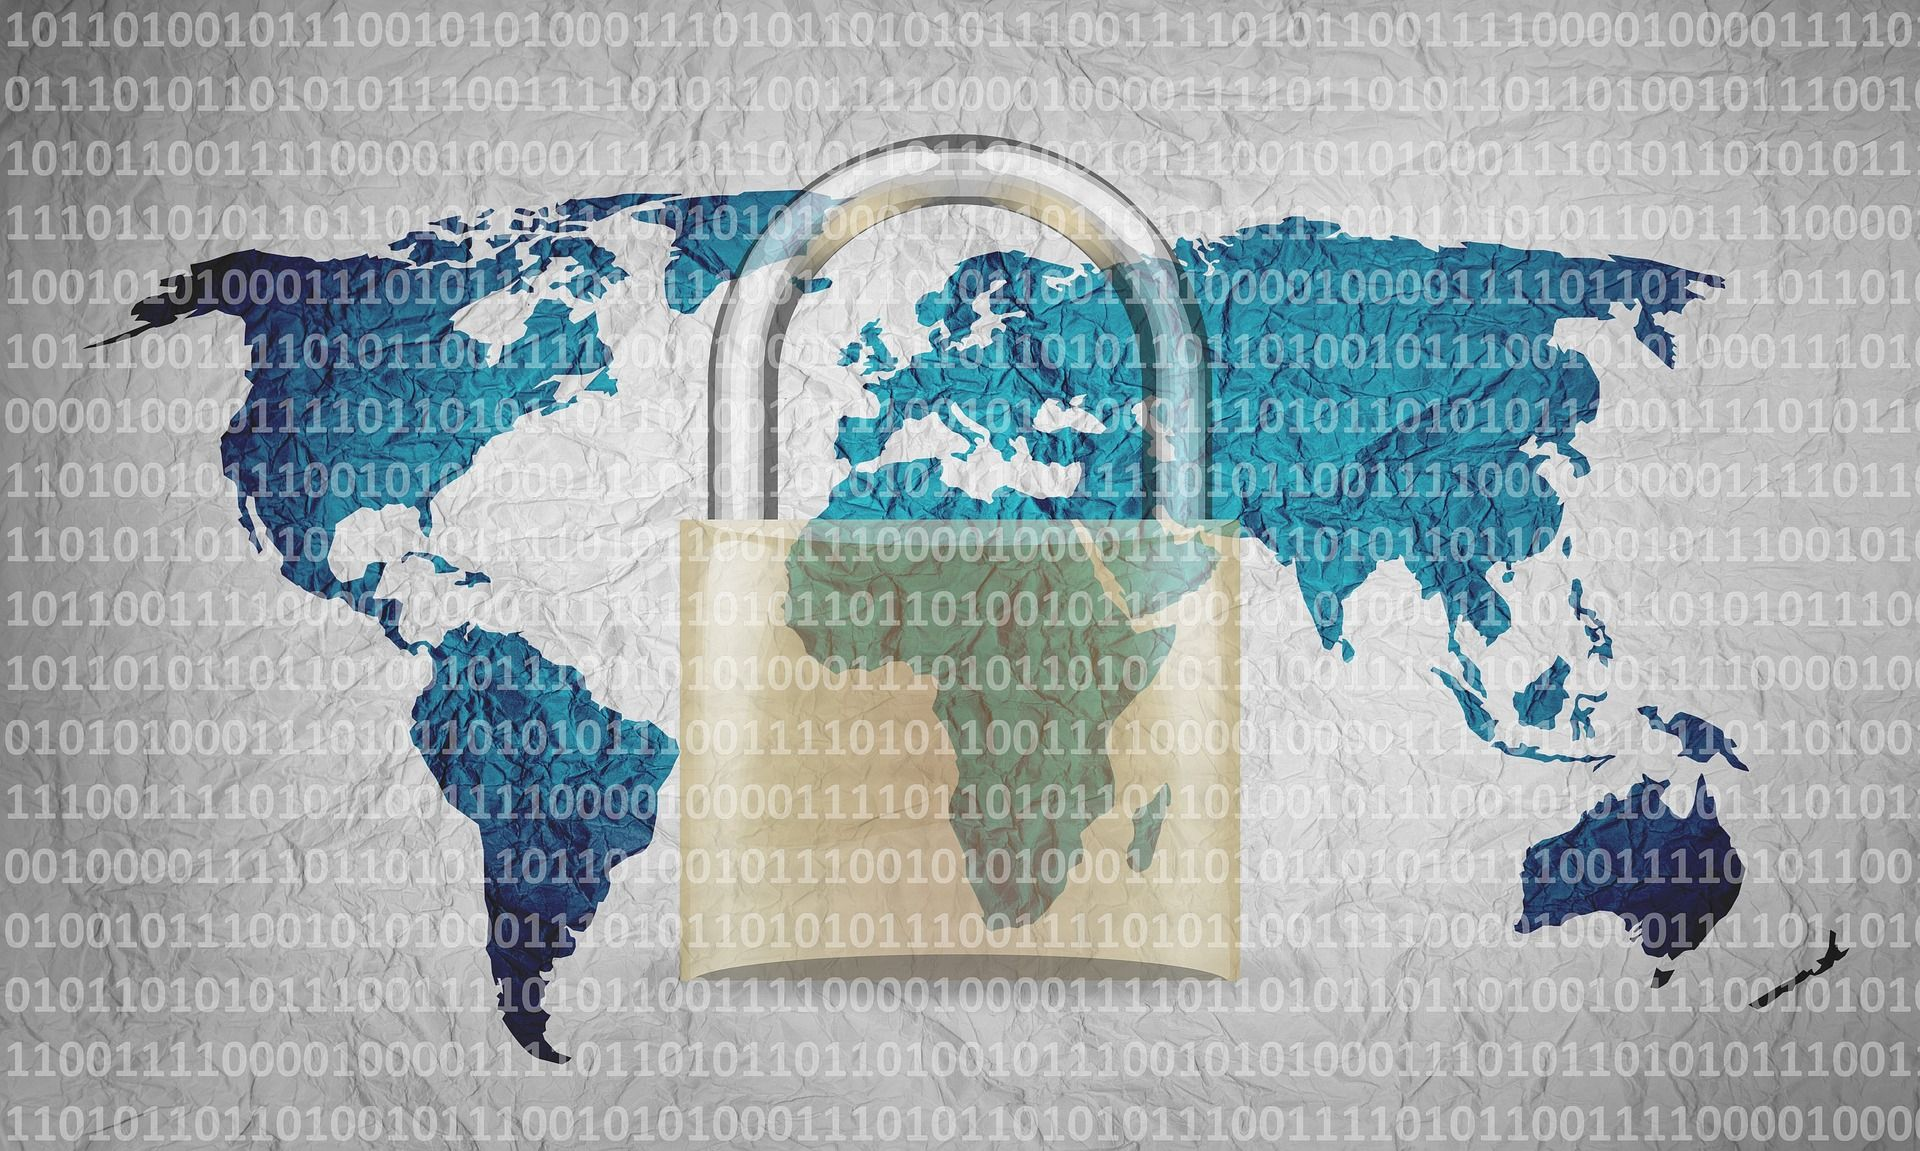 /cybersecurity-takeaways-from-the-pandemic-and-solutions-for-2021-vj82311g feature image